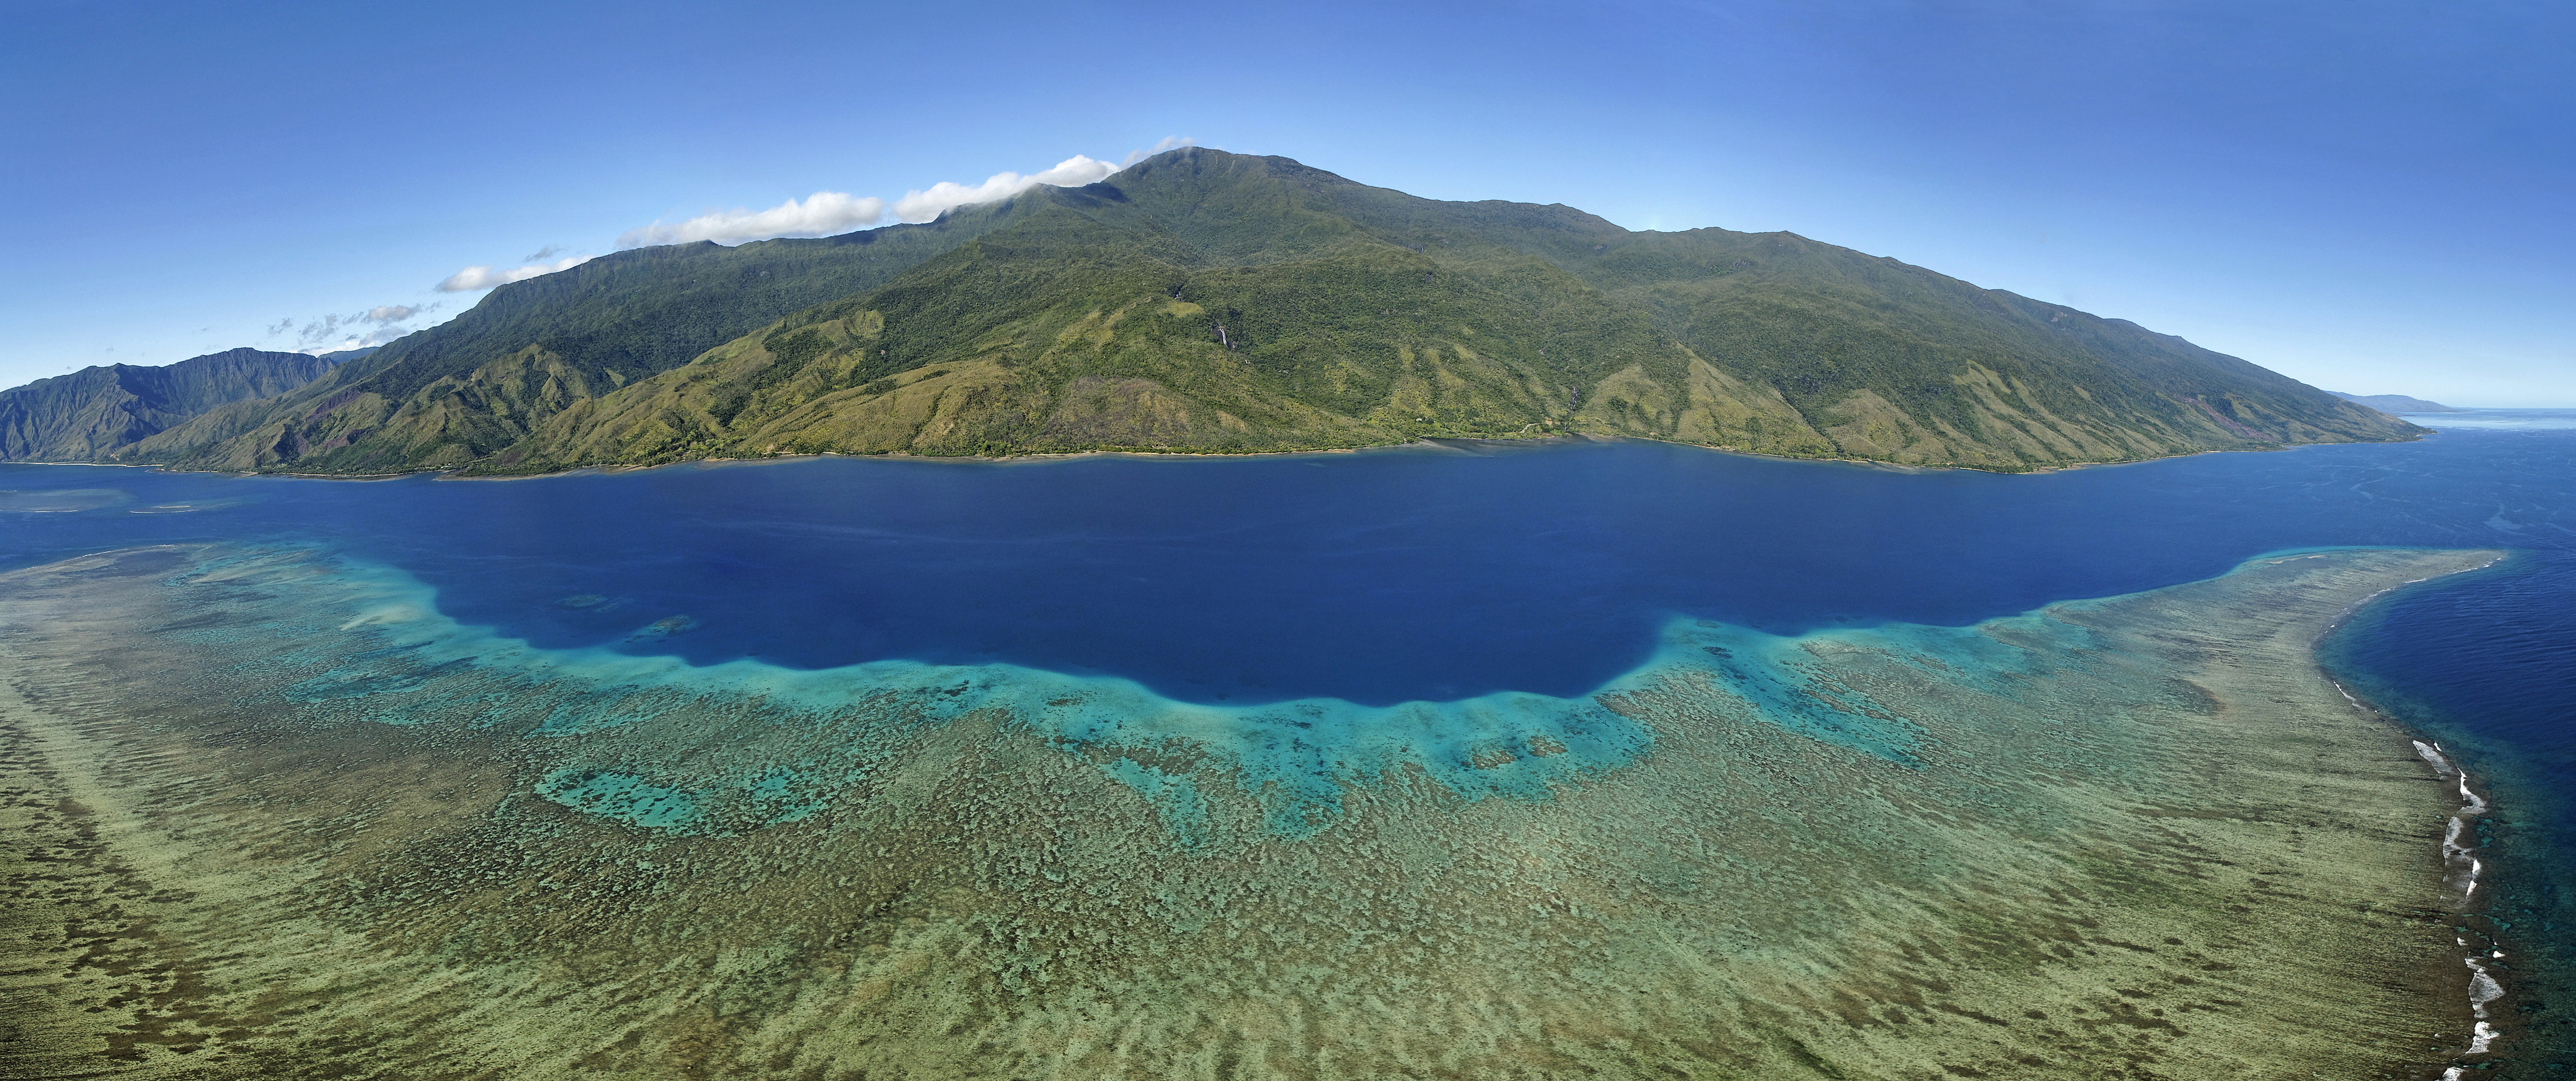 New caledonia tourism 3 days itinerary in new caledonia for The caledonia